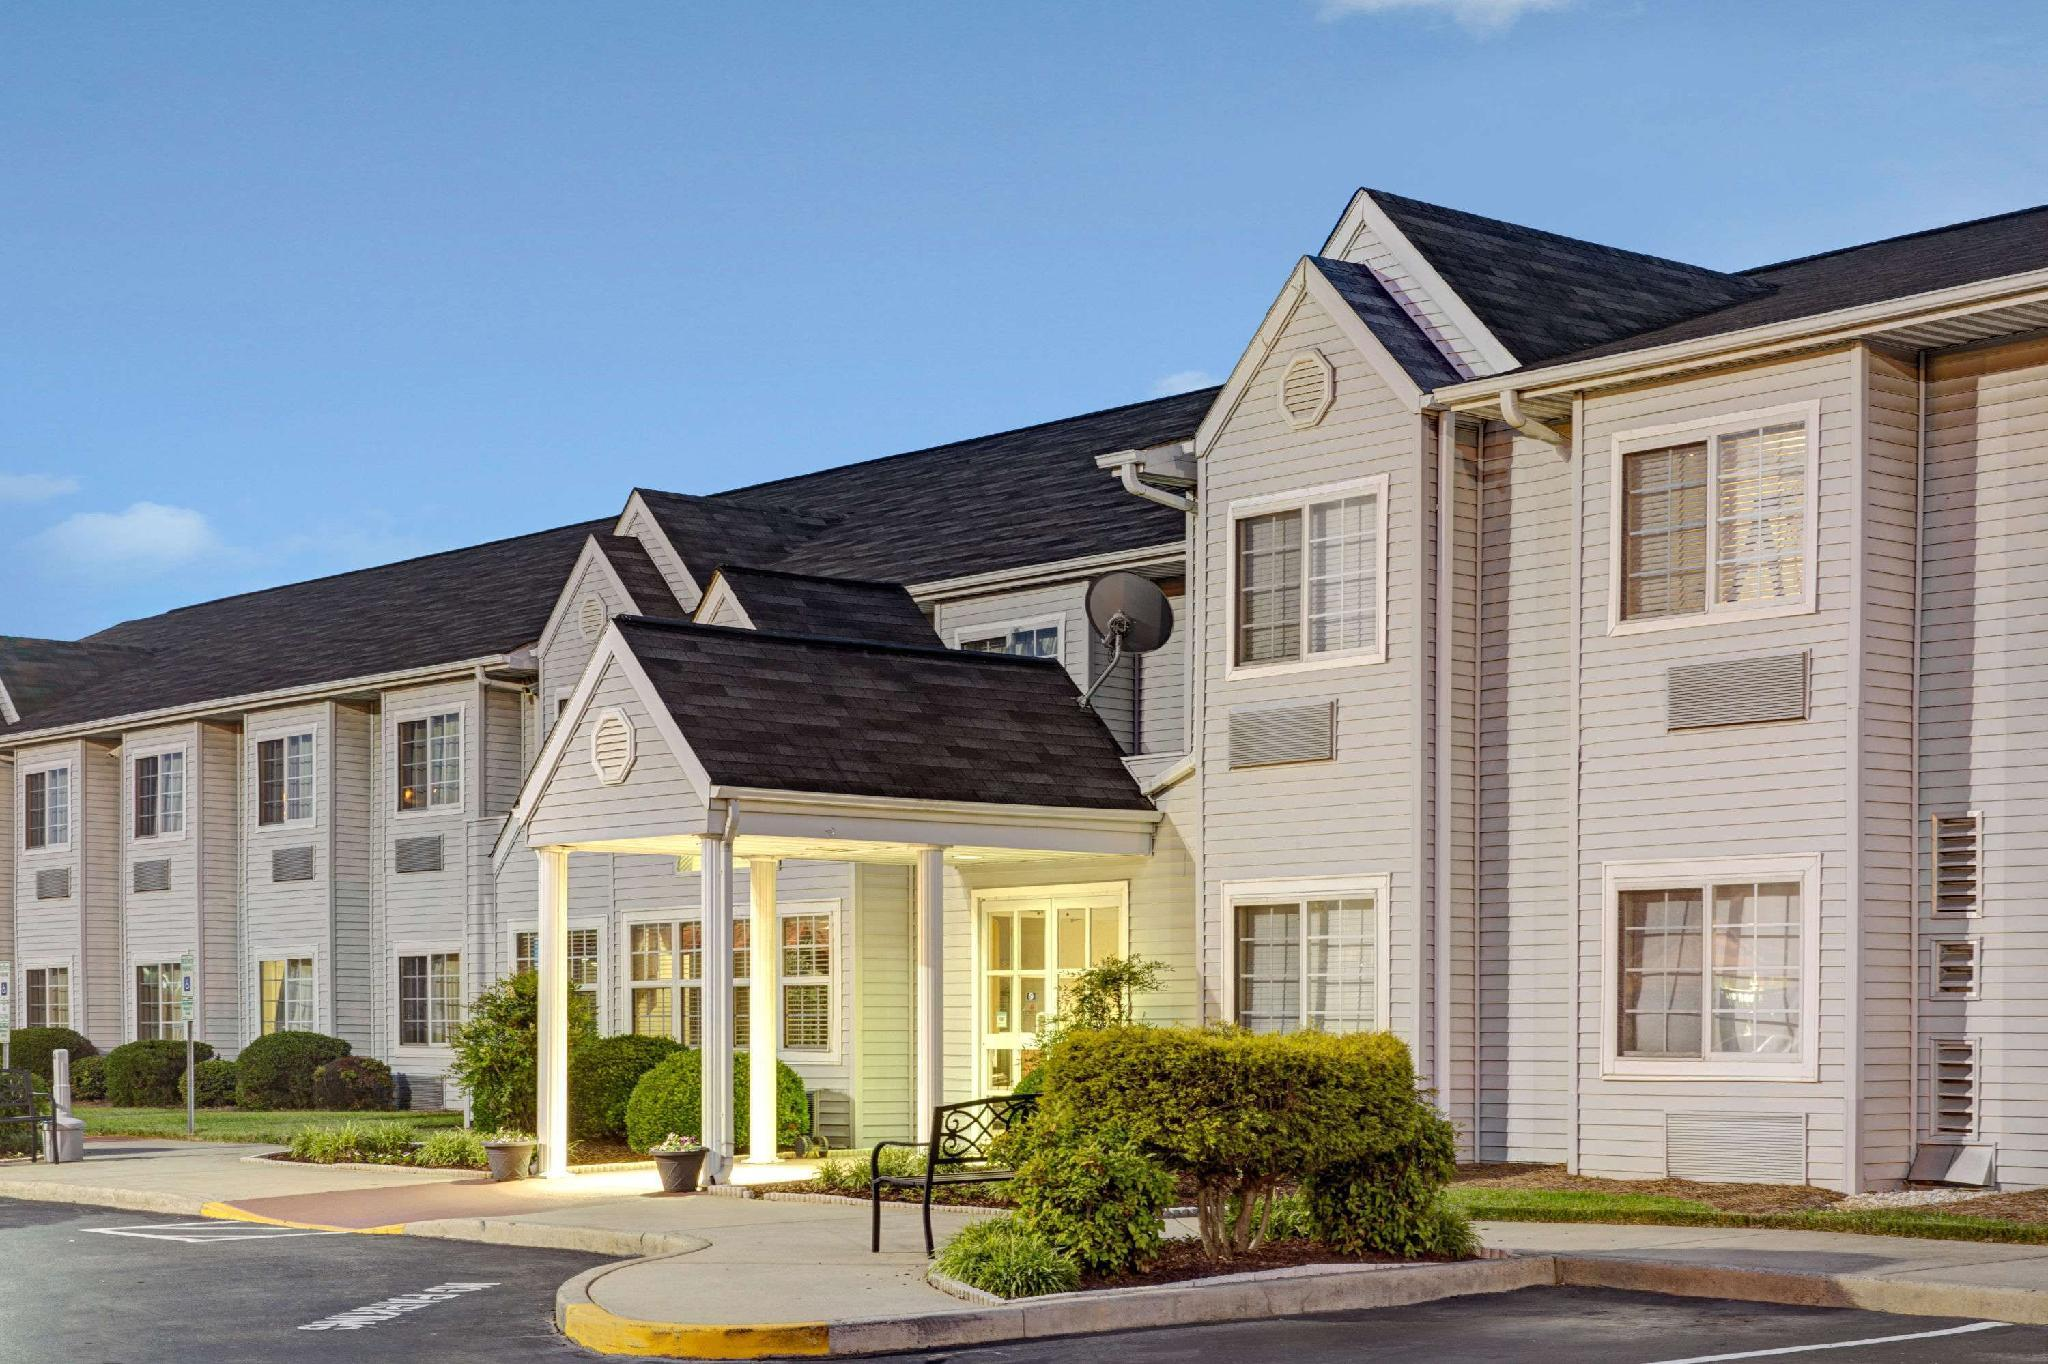 Microtel Inn And Suites By Wyndham Burlington